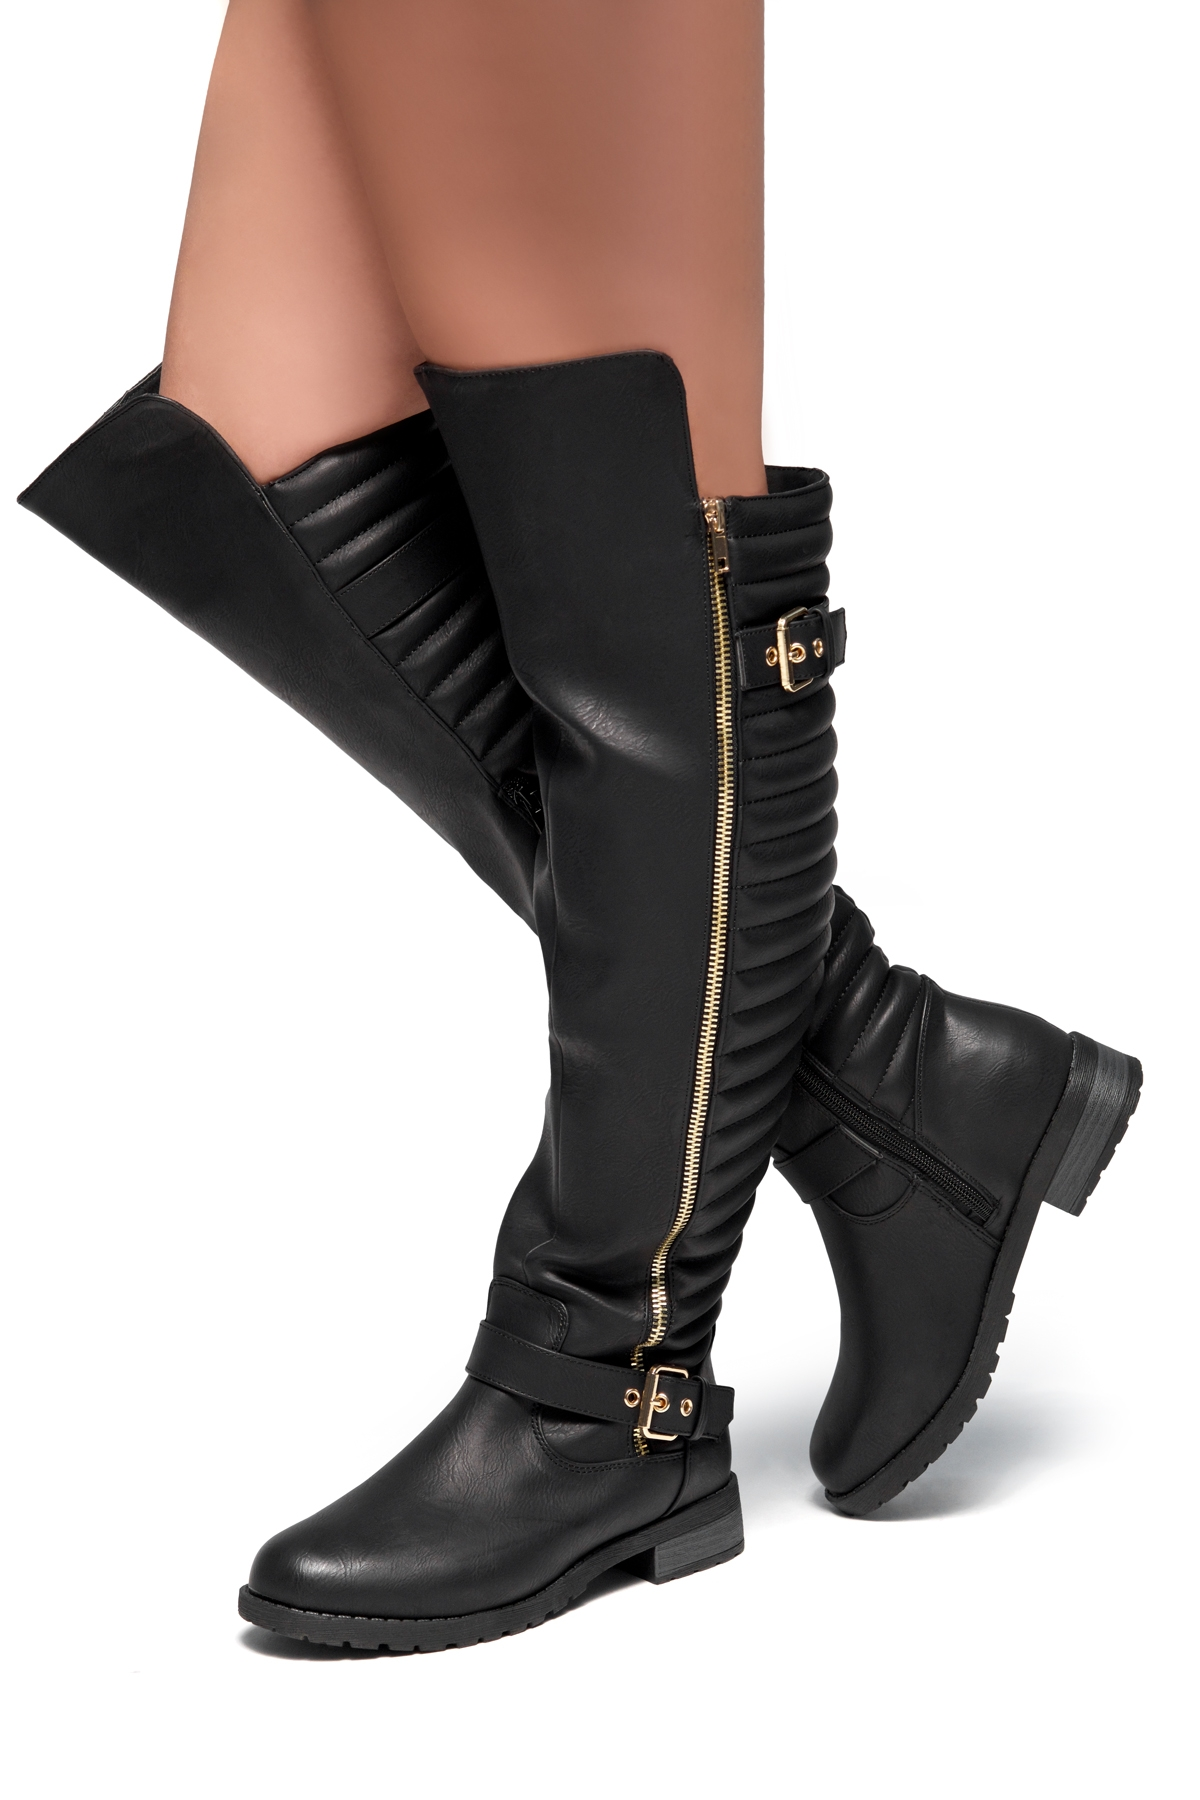 ae05e4e0a HerStyle Tense-Double Buckle with zipper detail Over-The-Knee Riding Boots  (Black)